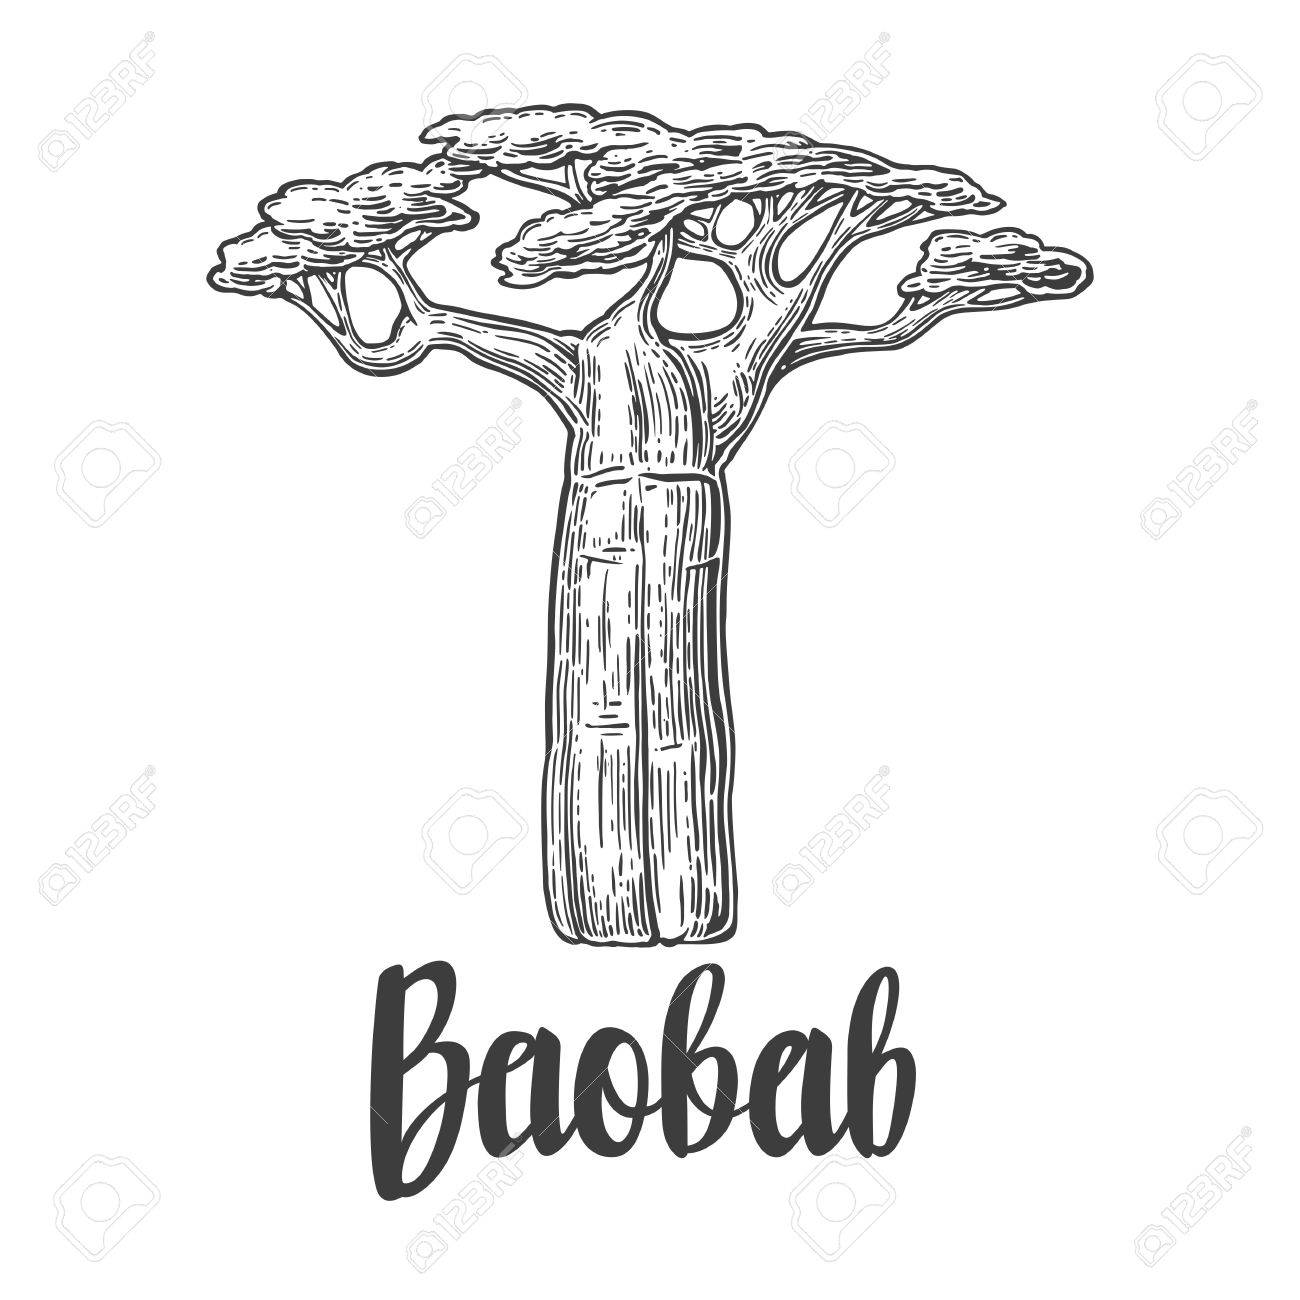 1300x1300 Baobab Tree. Vector Vintage Engraved Illustration On White